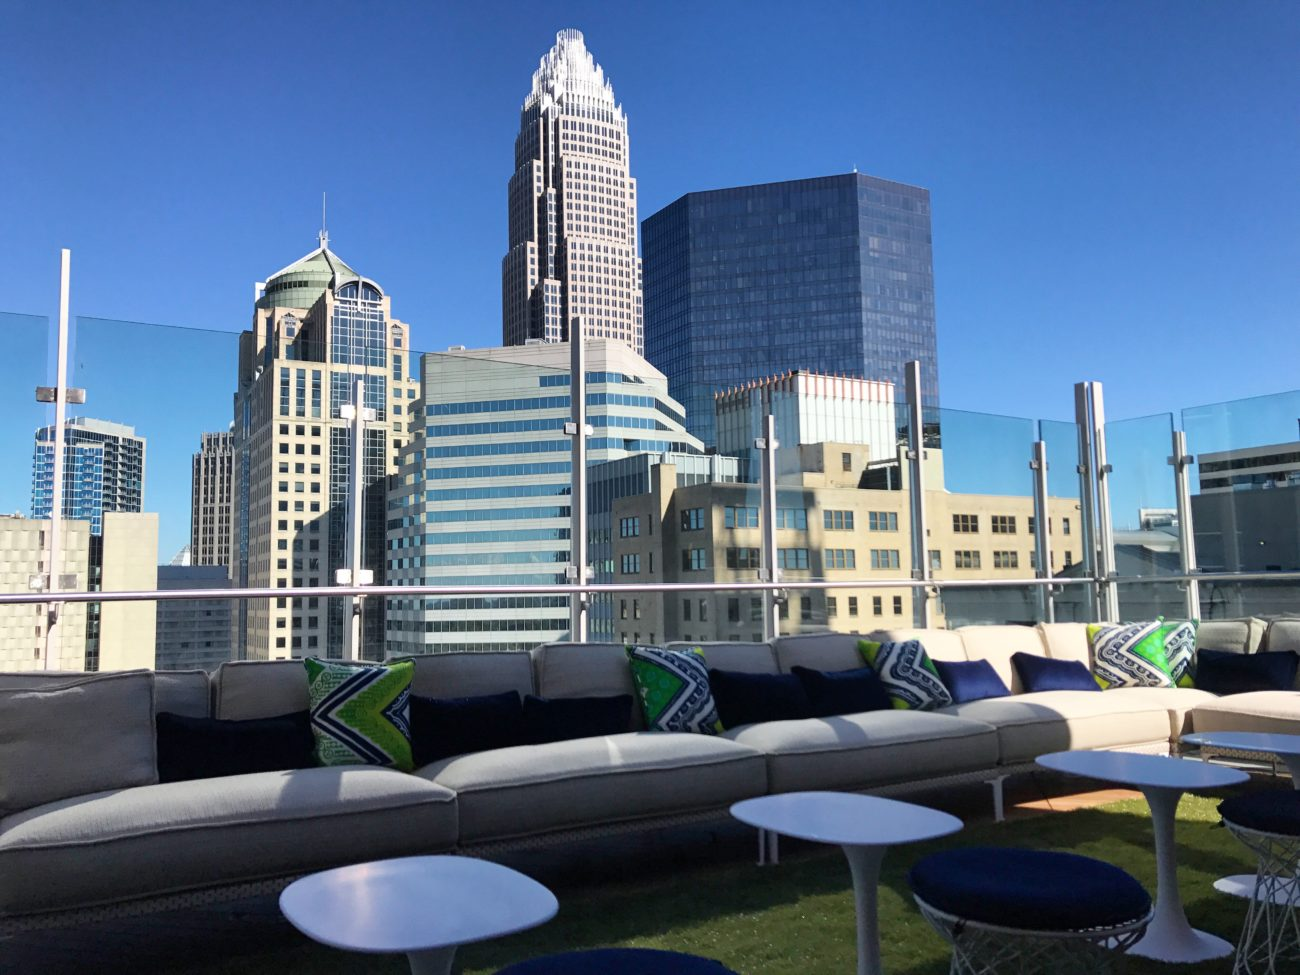 FIRST LOOK: Inside Angeline's and Merchant & Trade, Uptown's newest restaurant and rooftop bar opening next week